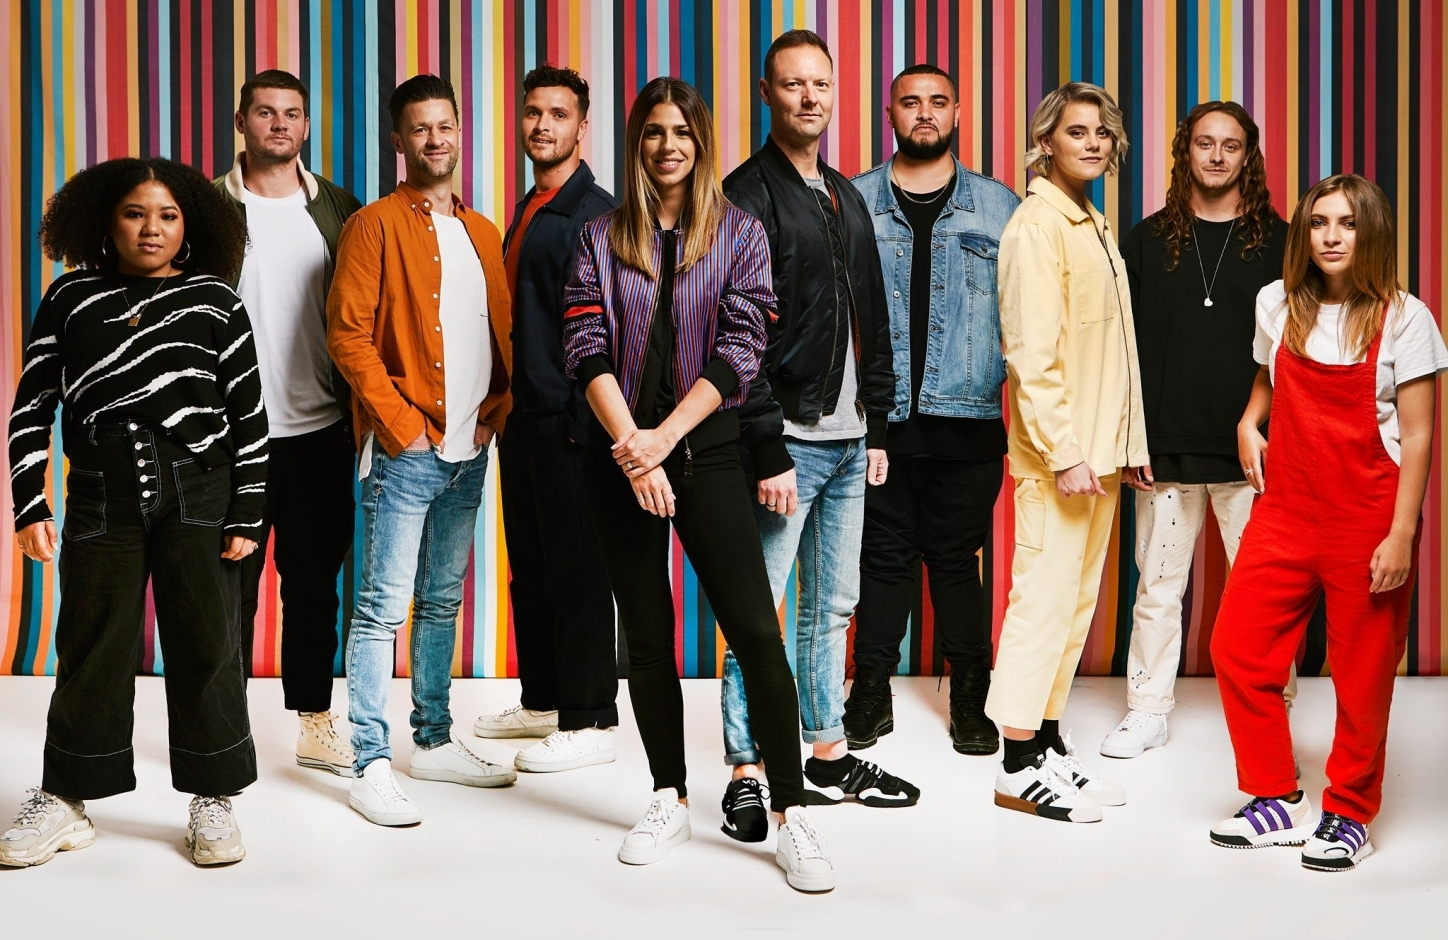 FREE DOWNLOAD: Hillsong Worship - King of Kings (Live) [Mp3 + Video]